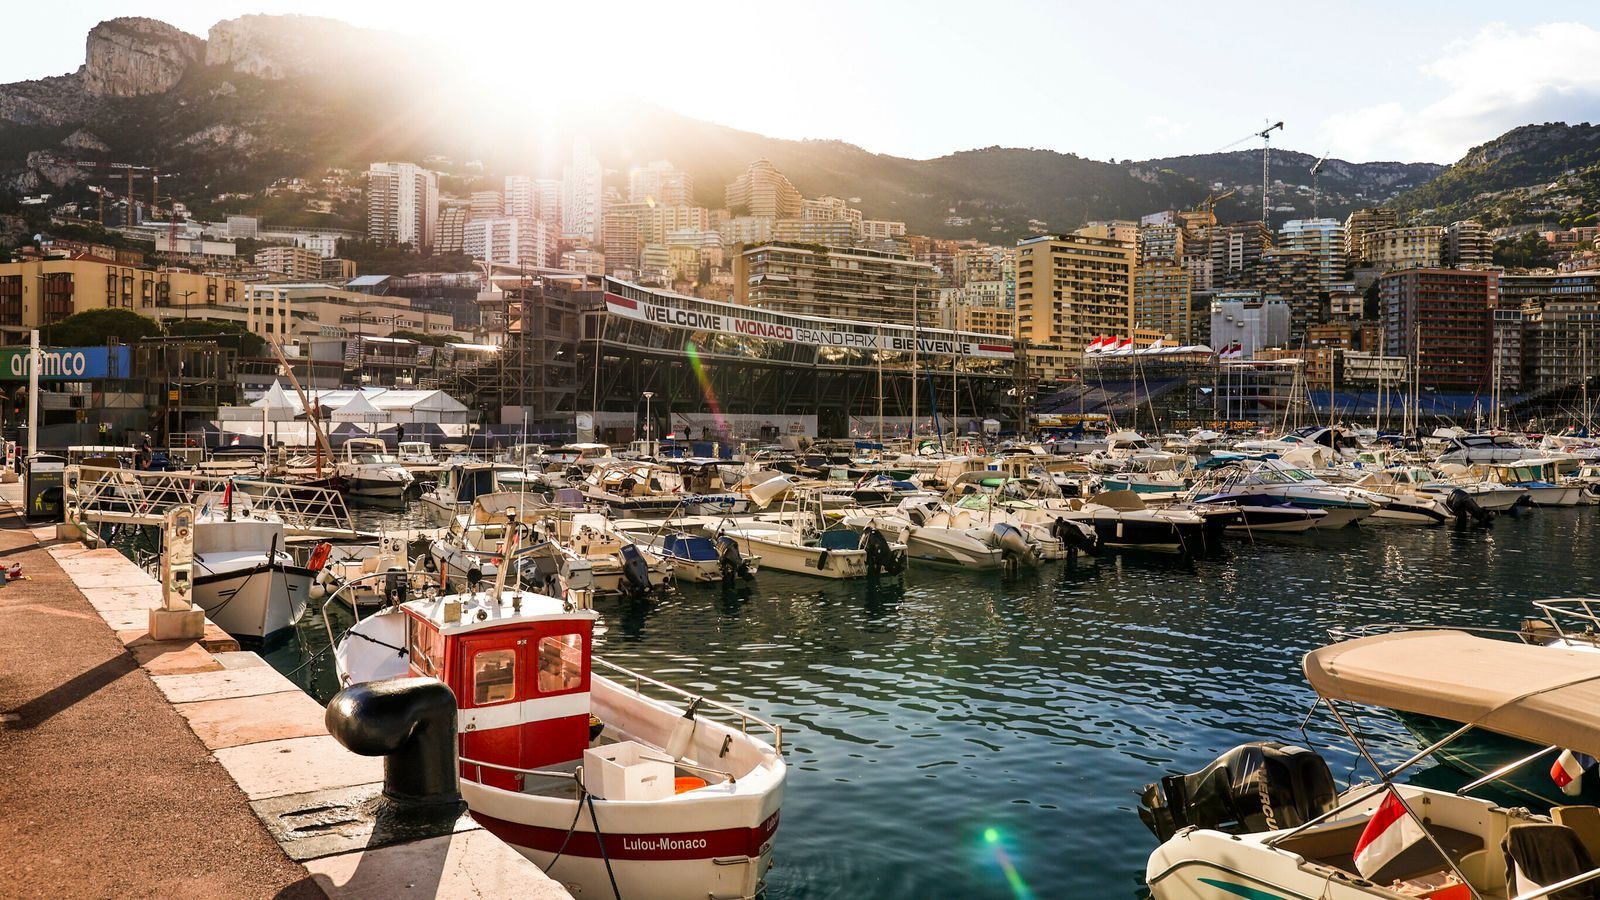 Monaco GP live TV times: When to watch the Formula 1 race and all sessions on Sky Sports F1 this week